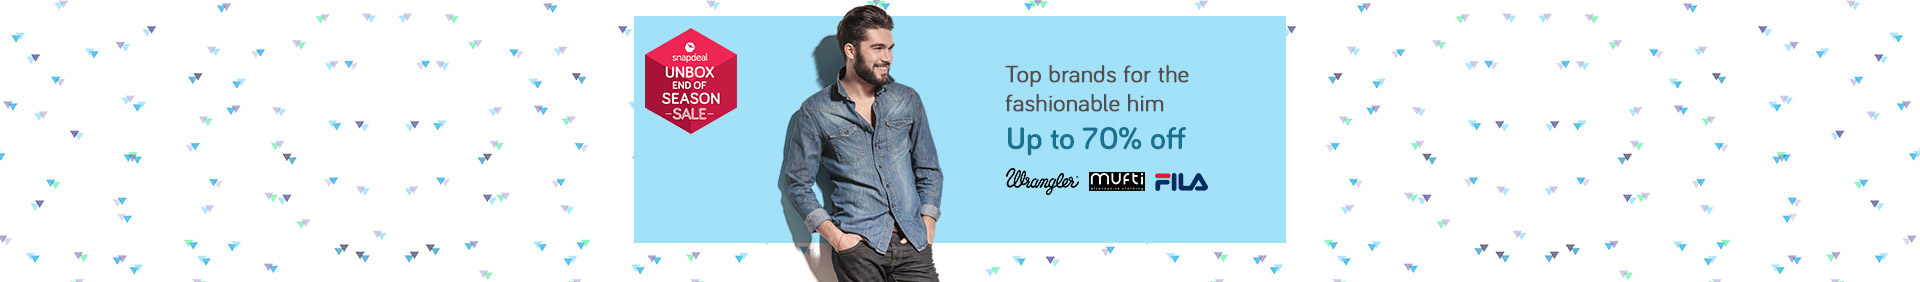 Snapdeal: Men's Fashion – Up To 70% OFF on Top Brands